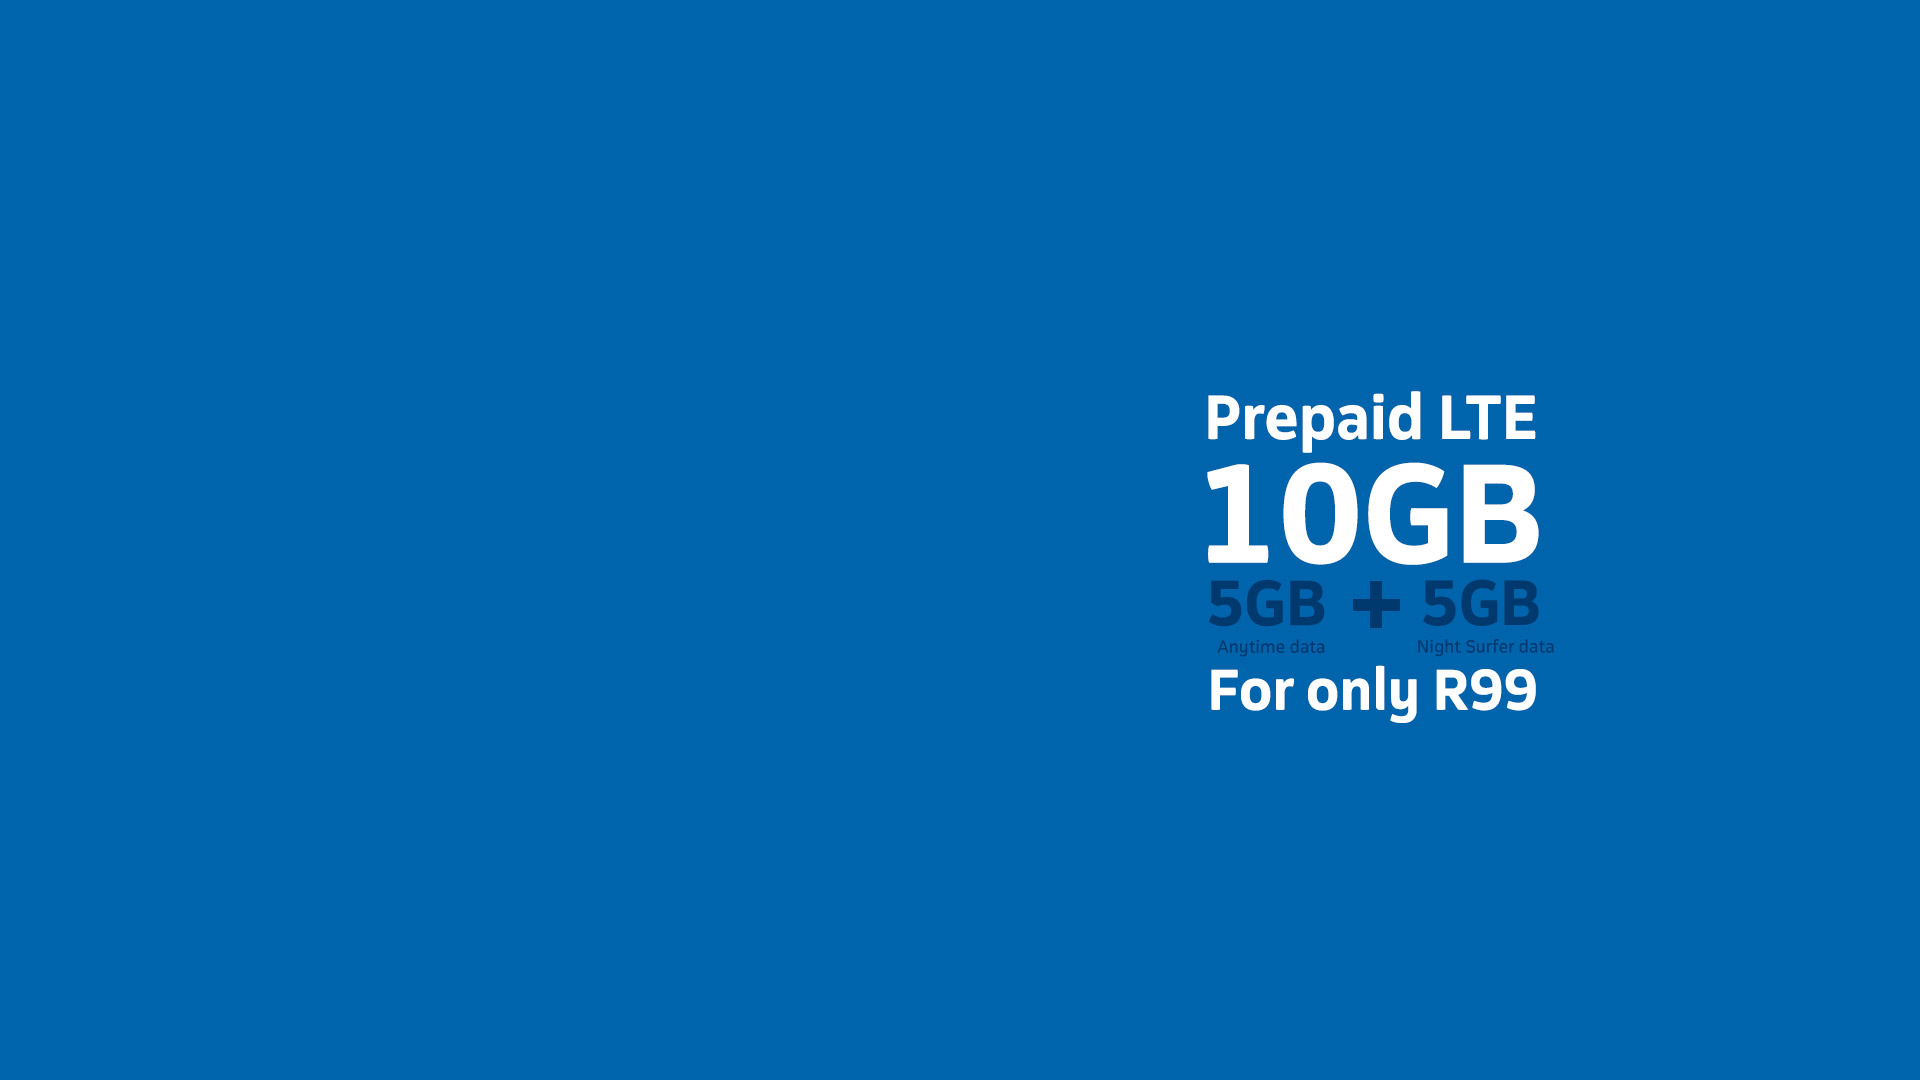 "<strong style=""font-size:26px !important;"">Why Prepaid LTE data bundles?</strong>"